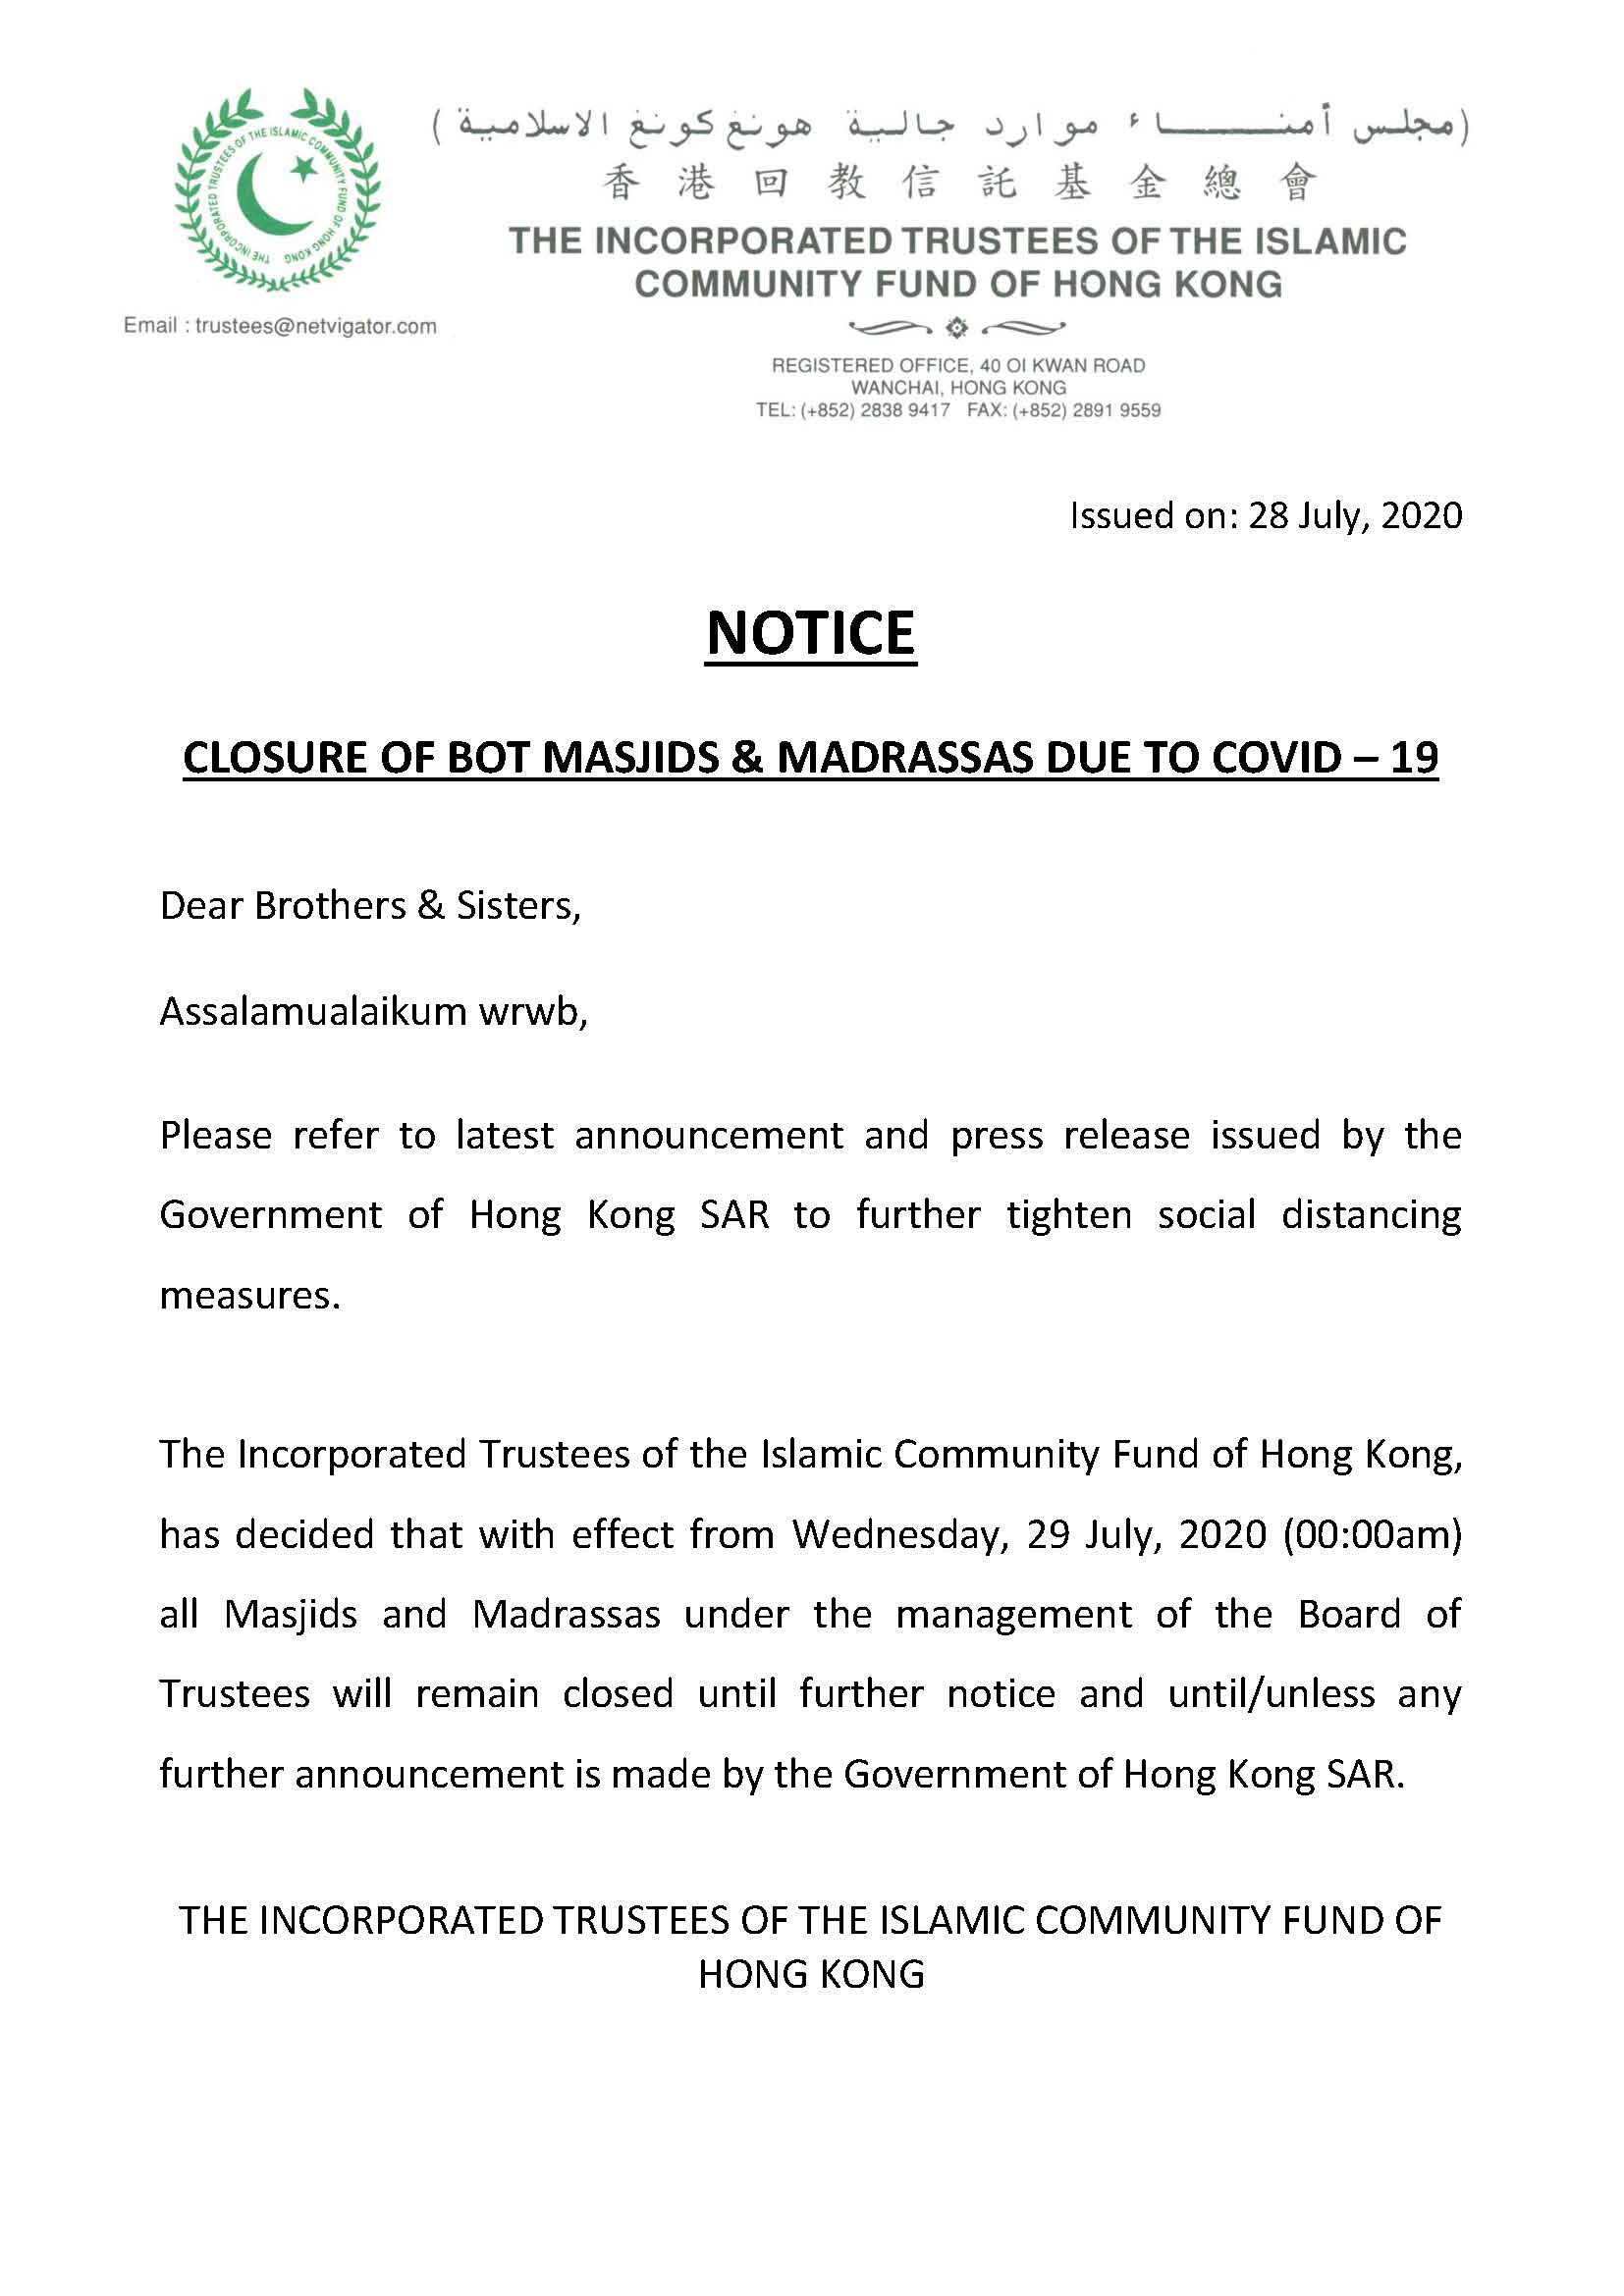 Closure of BOT Masjids & Madrassas due to COVID-19 (29 July)